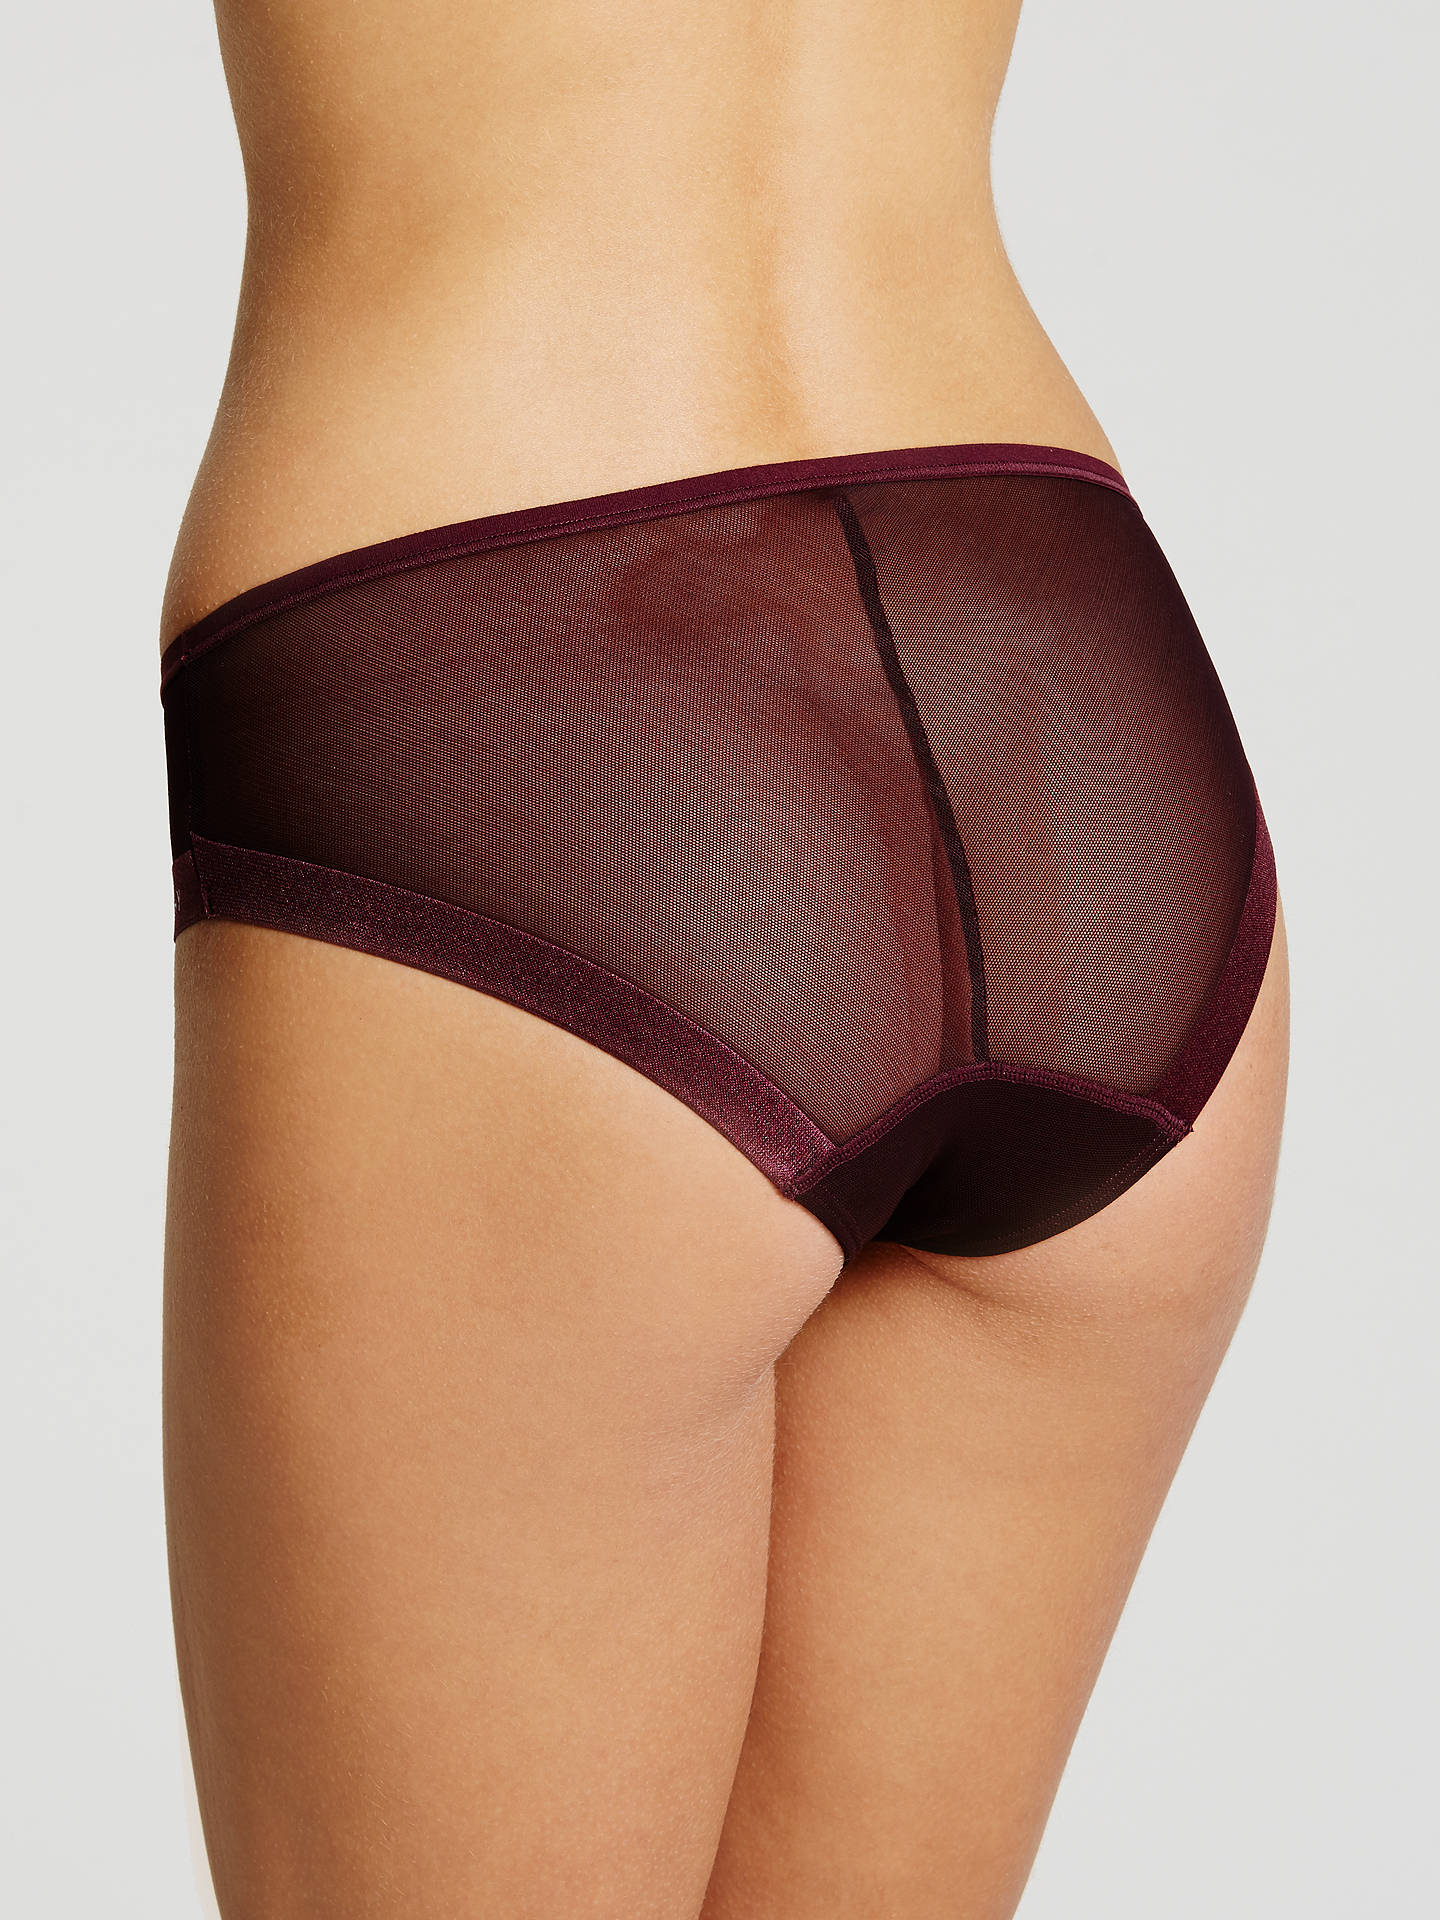 2458075bda65 ... Buy DKNY Modern Lights Hipster Briefs, Raven, S Online at johnlewis.com  ...